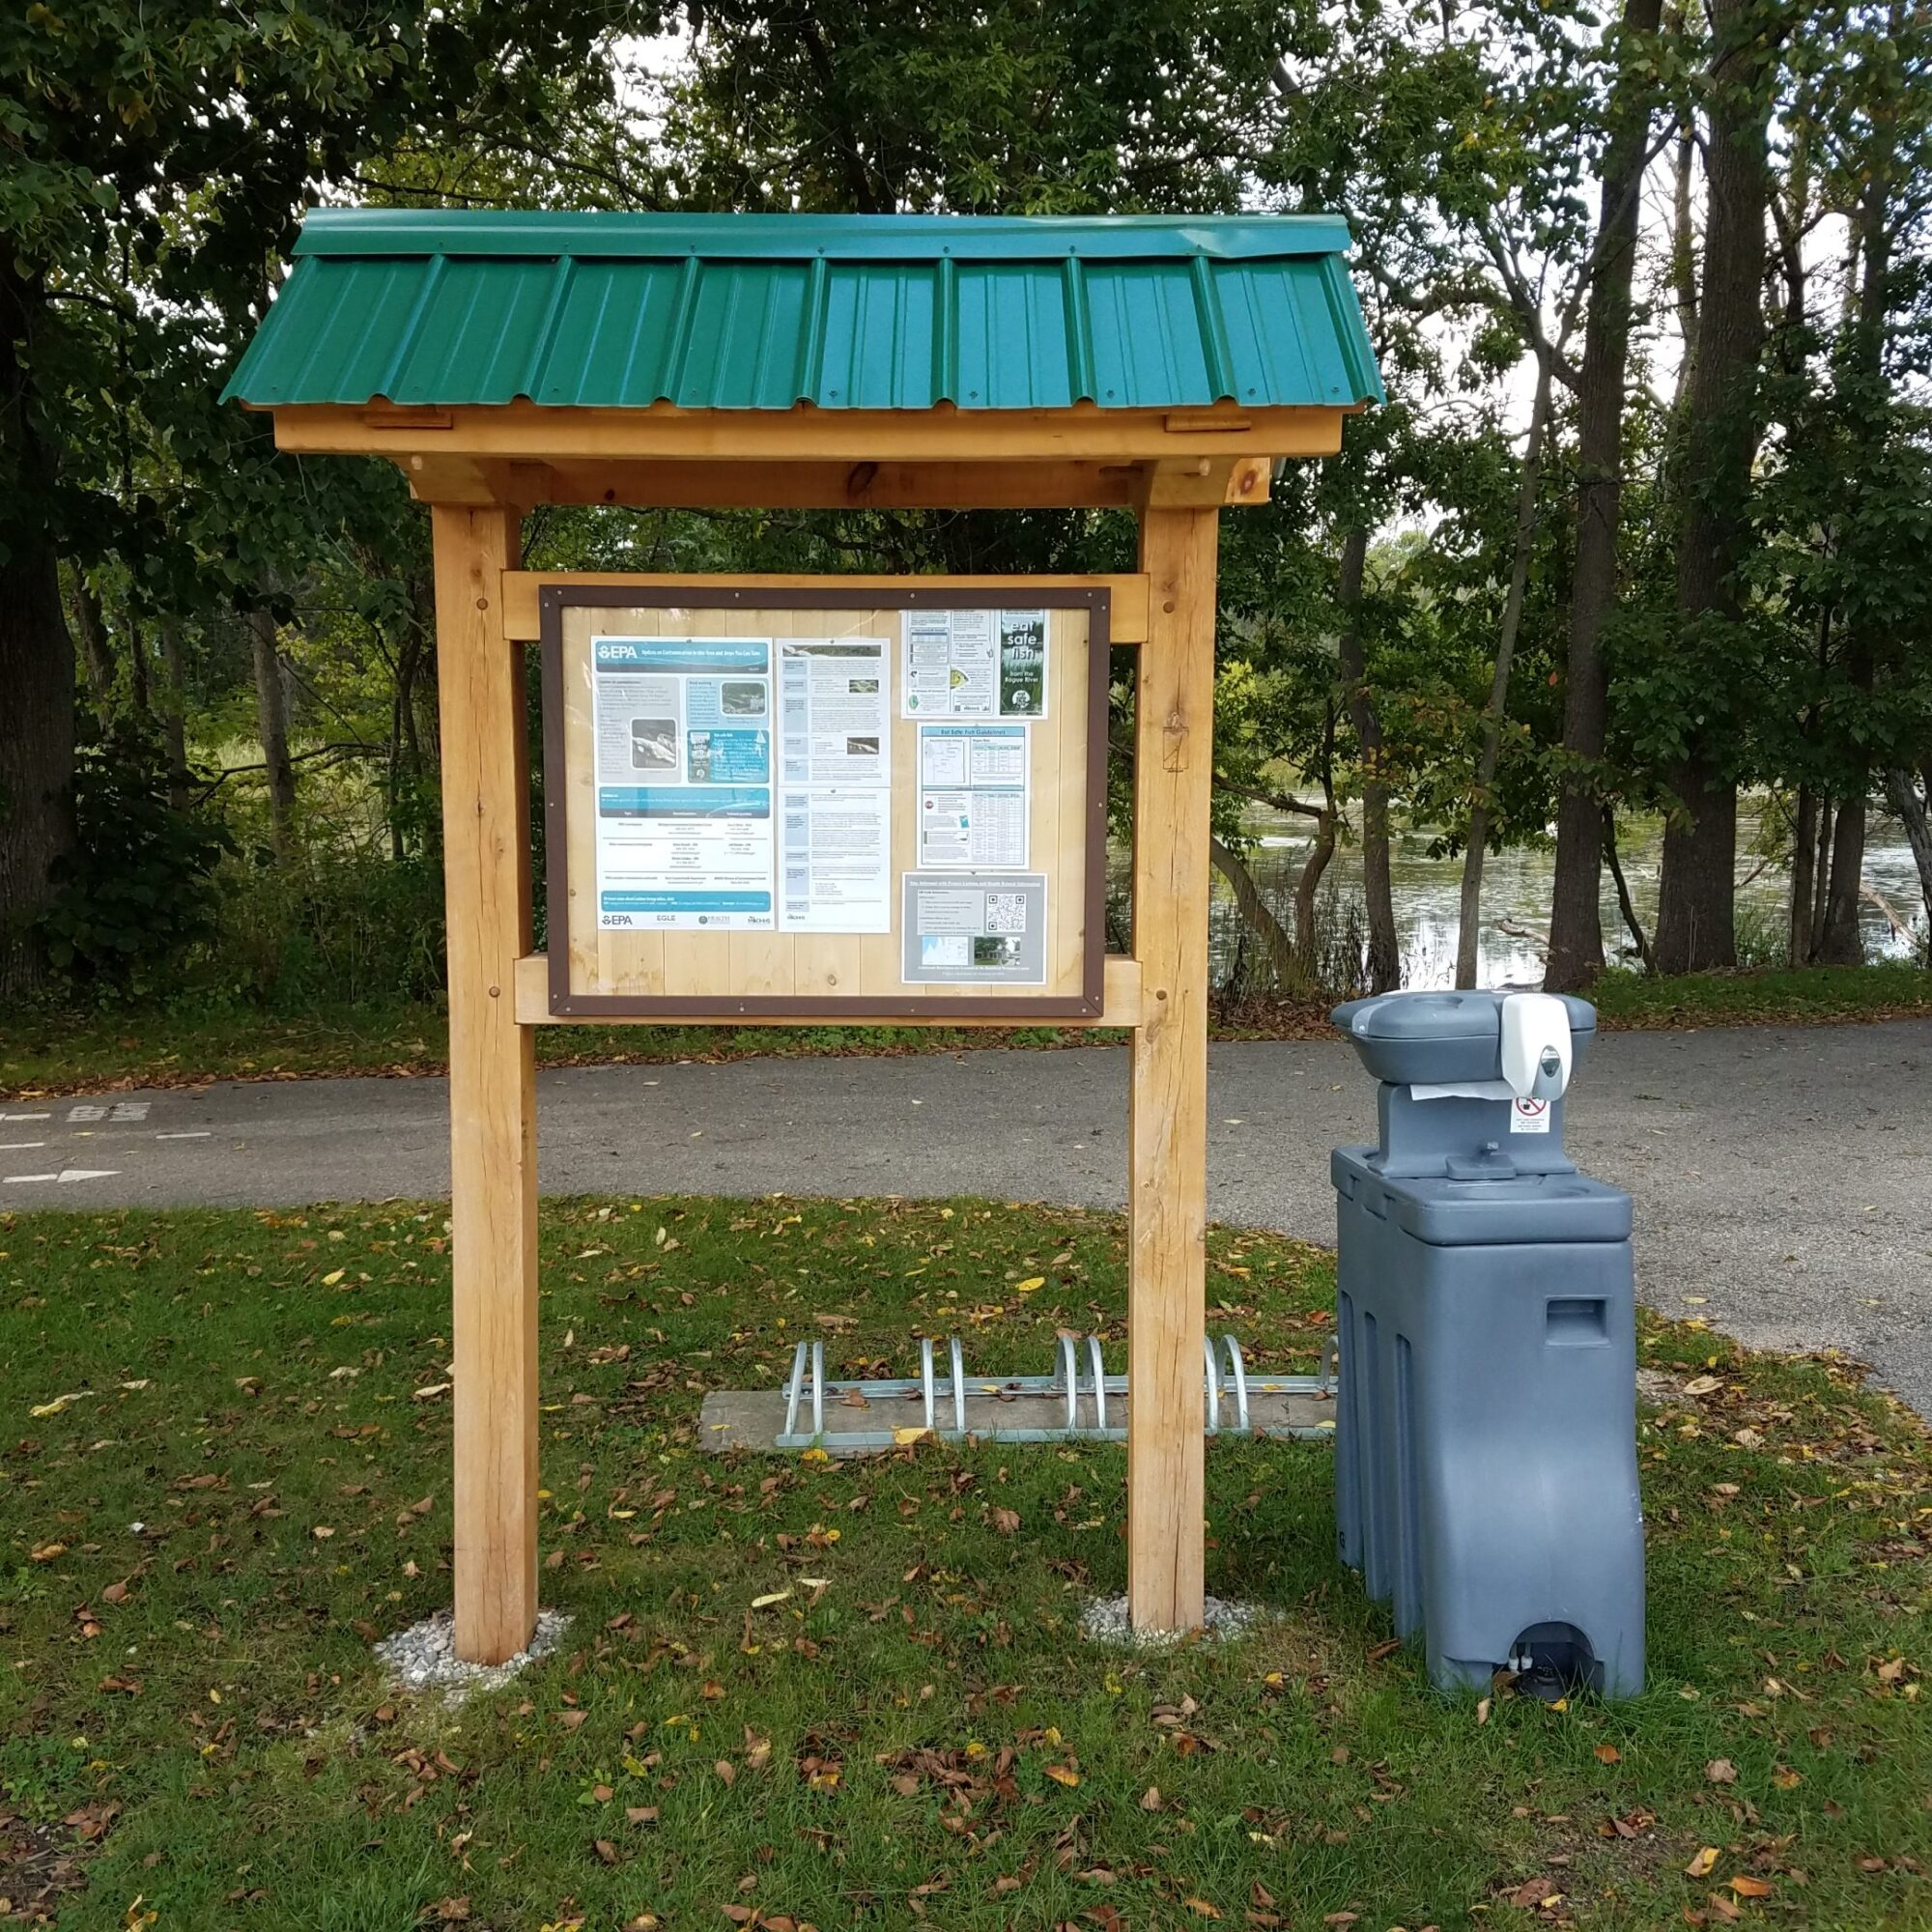 Information kiosk and hand-wash station